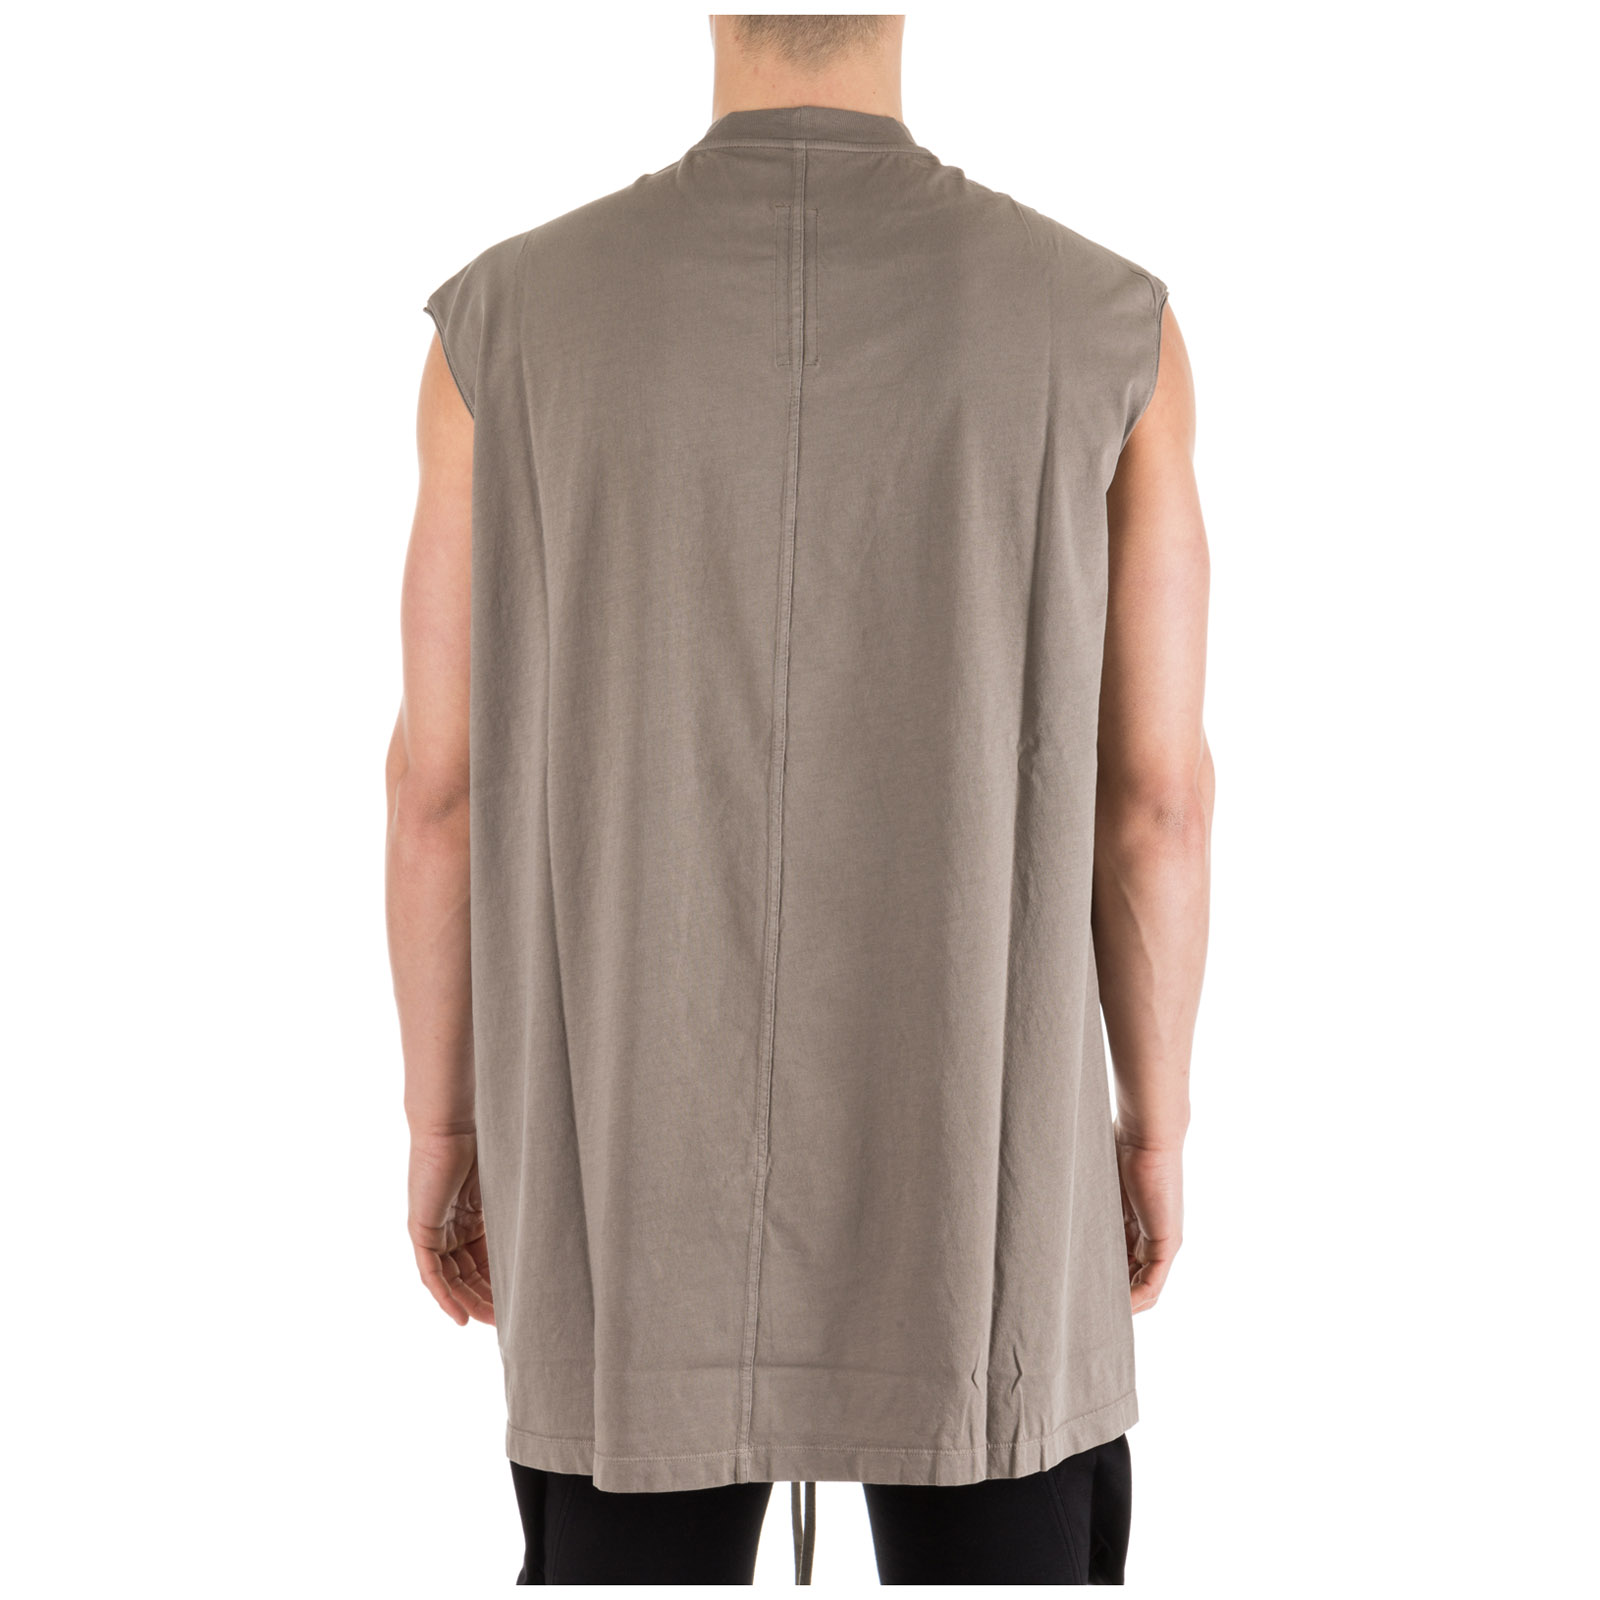 39be528650def Rick Owens Men s sleeveless tank top t-shirt babel